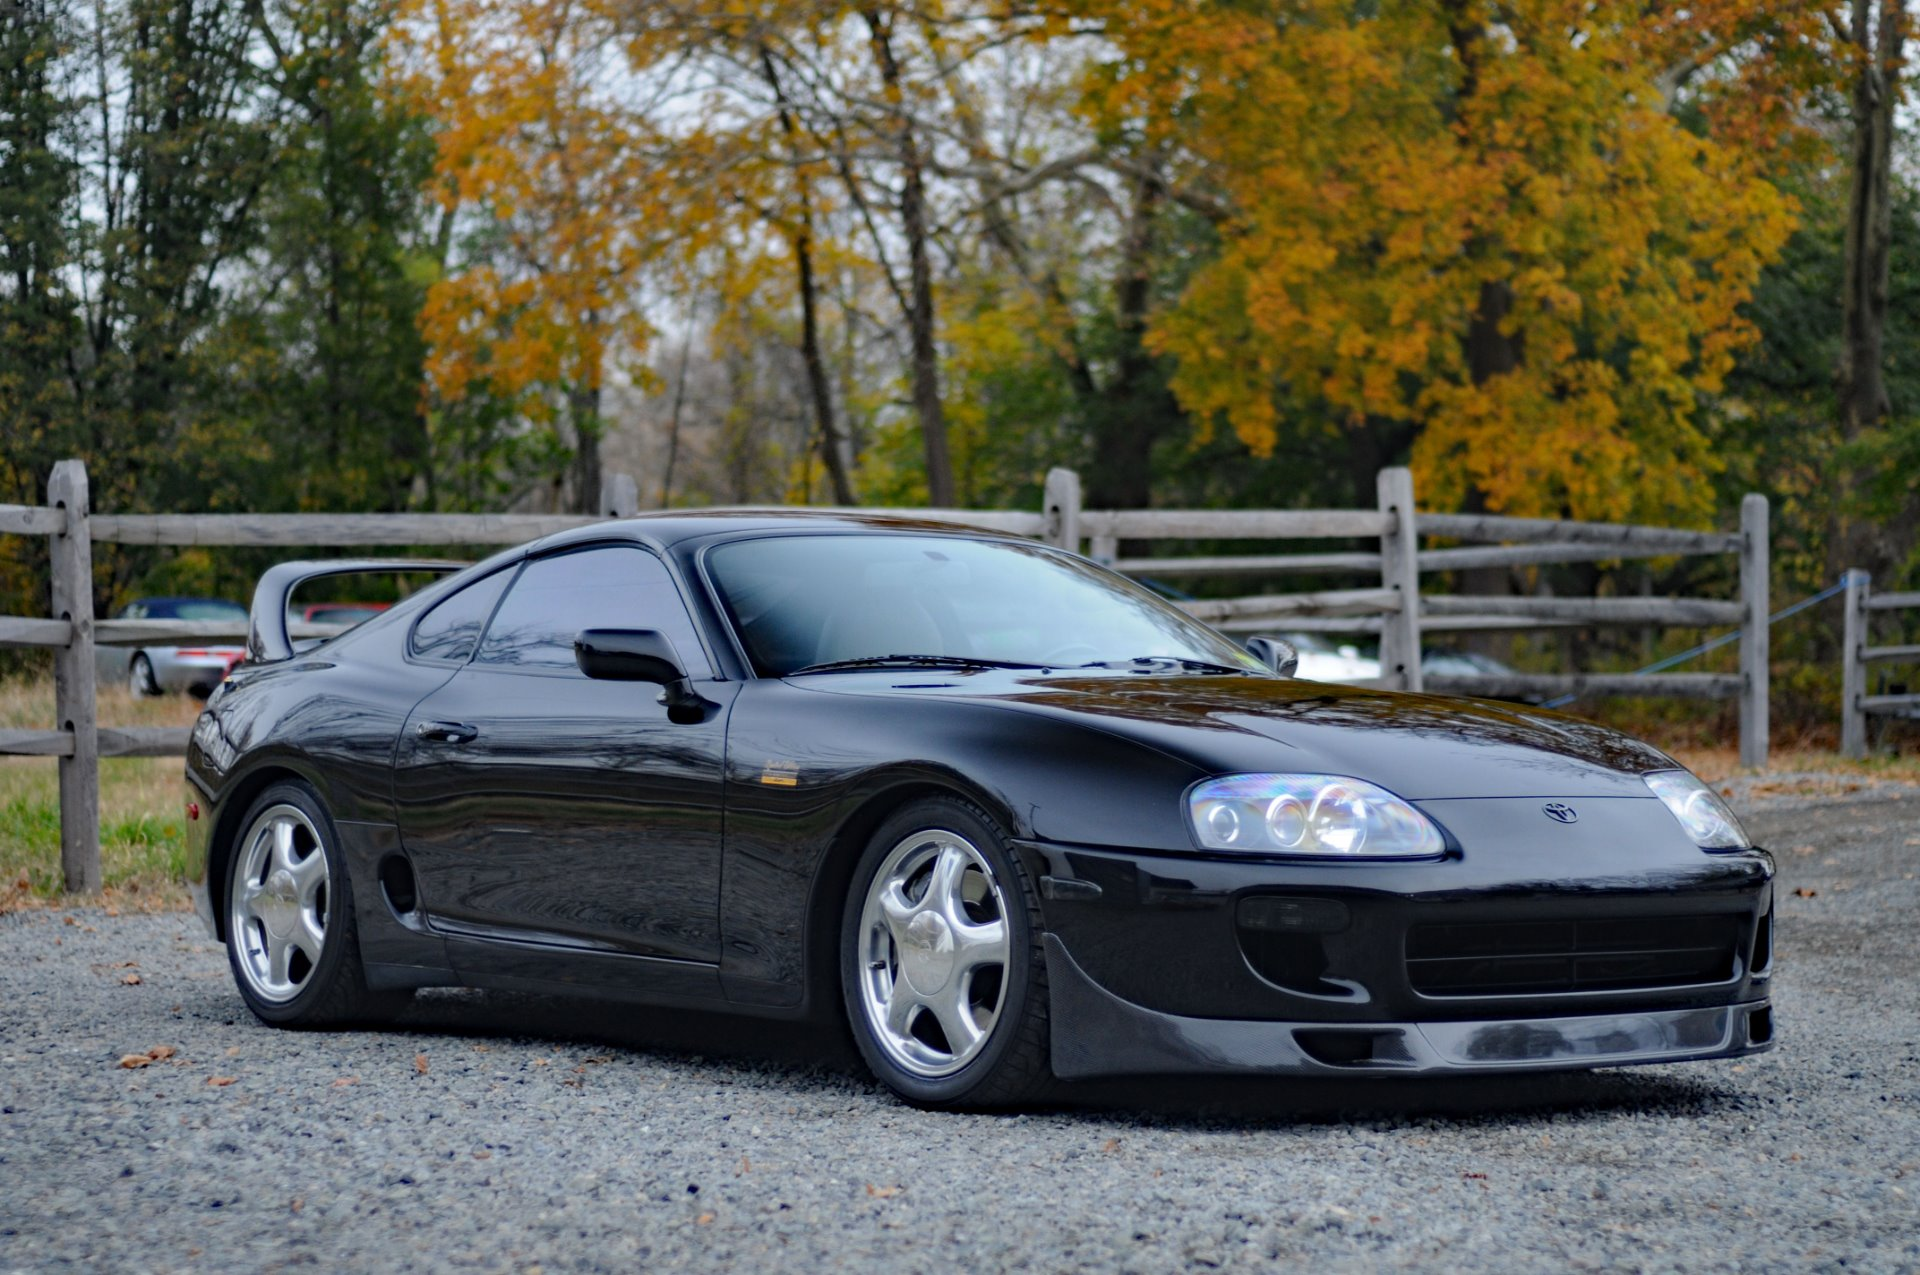 1997 Toyota Supra Turbo Stock 1111 For Sale Near Peapack